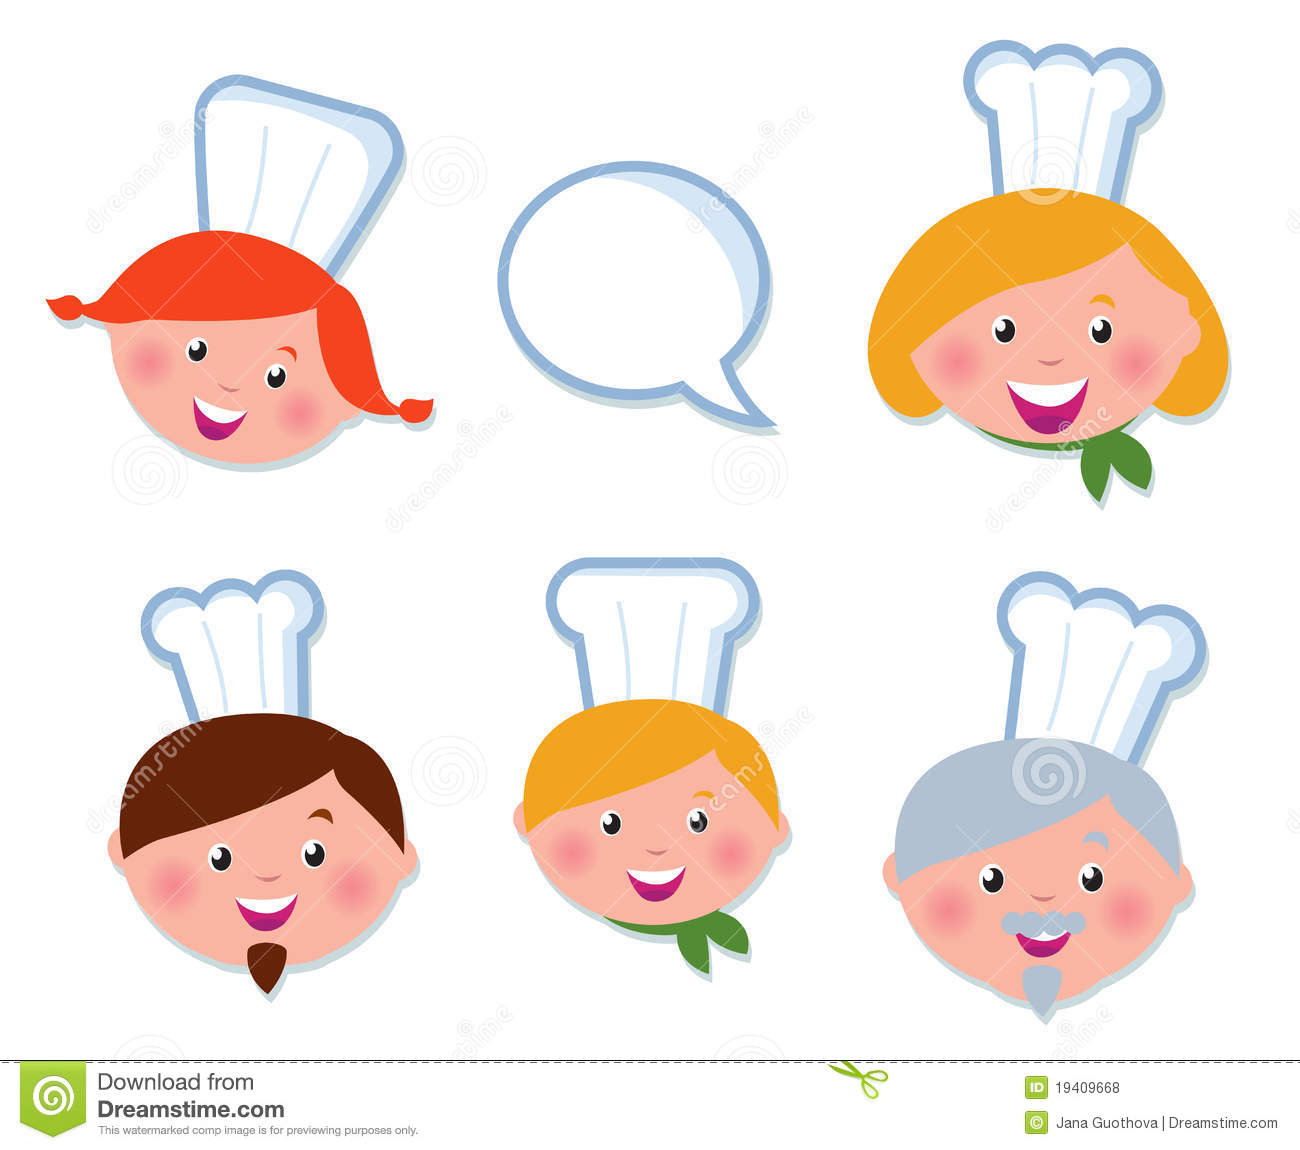 Cute cooking and icons set chef family royalty free stock photos image 19409668 - Stylish cooking ...